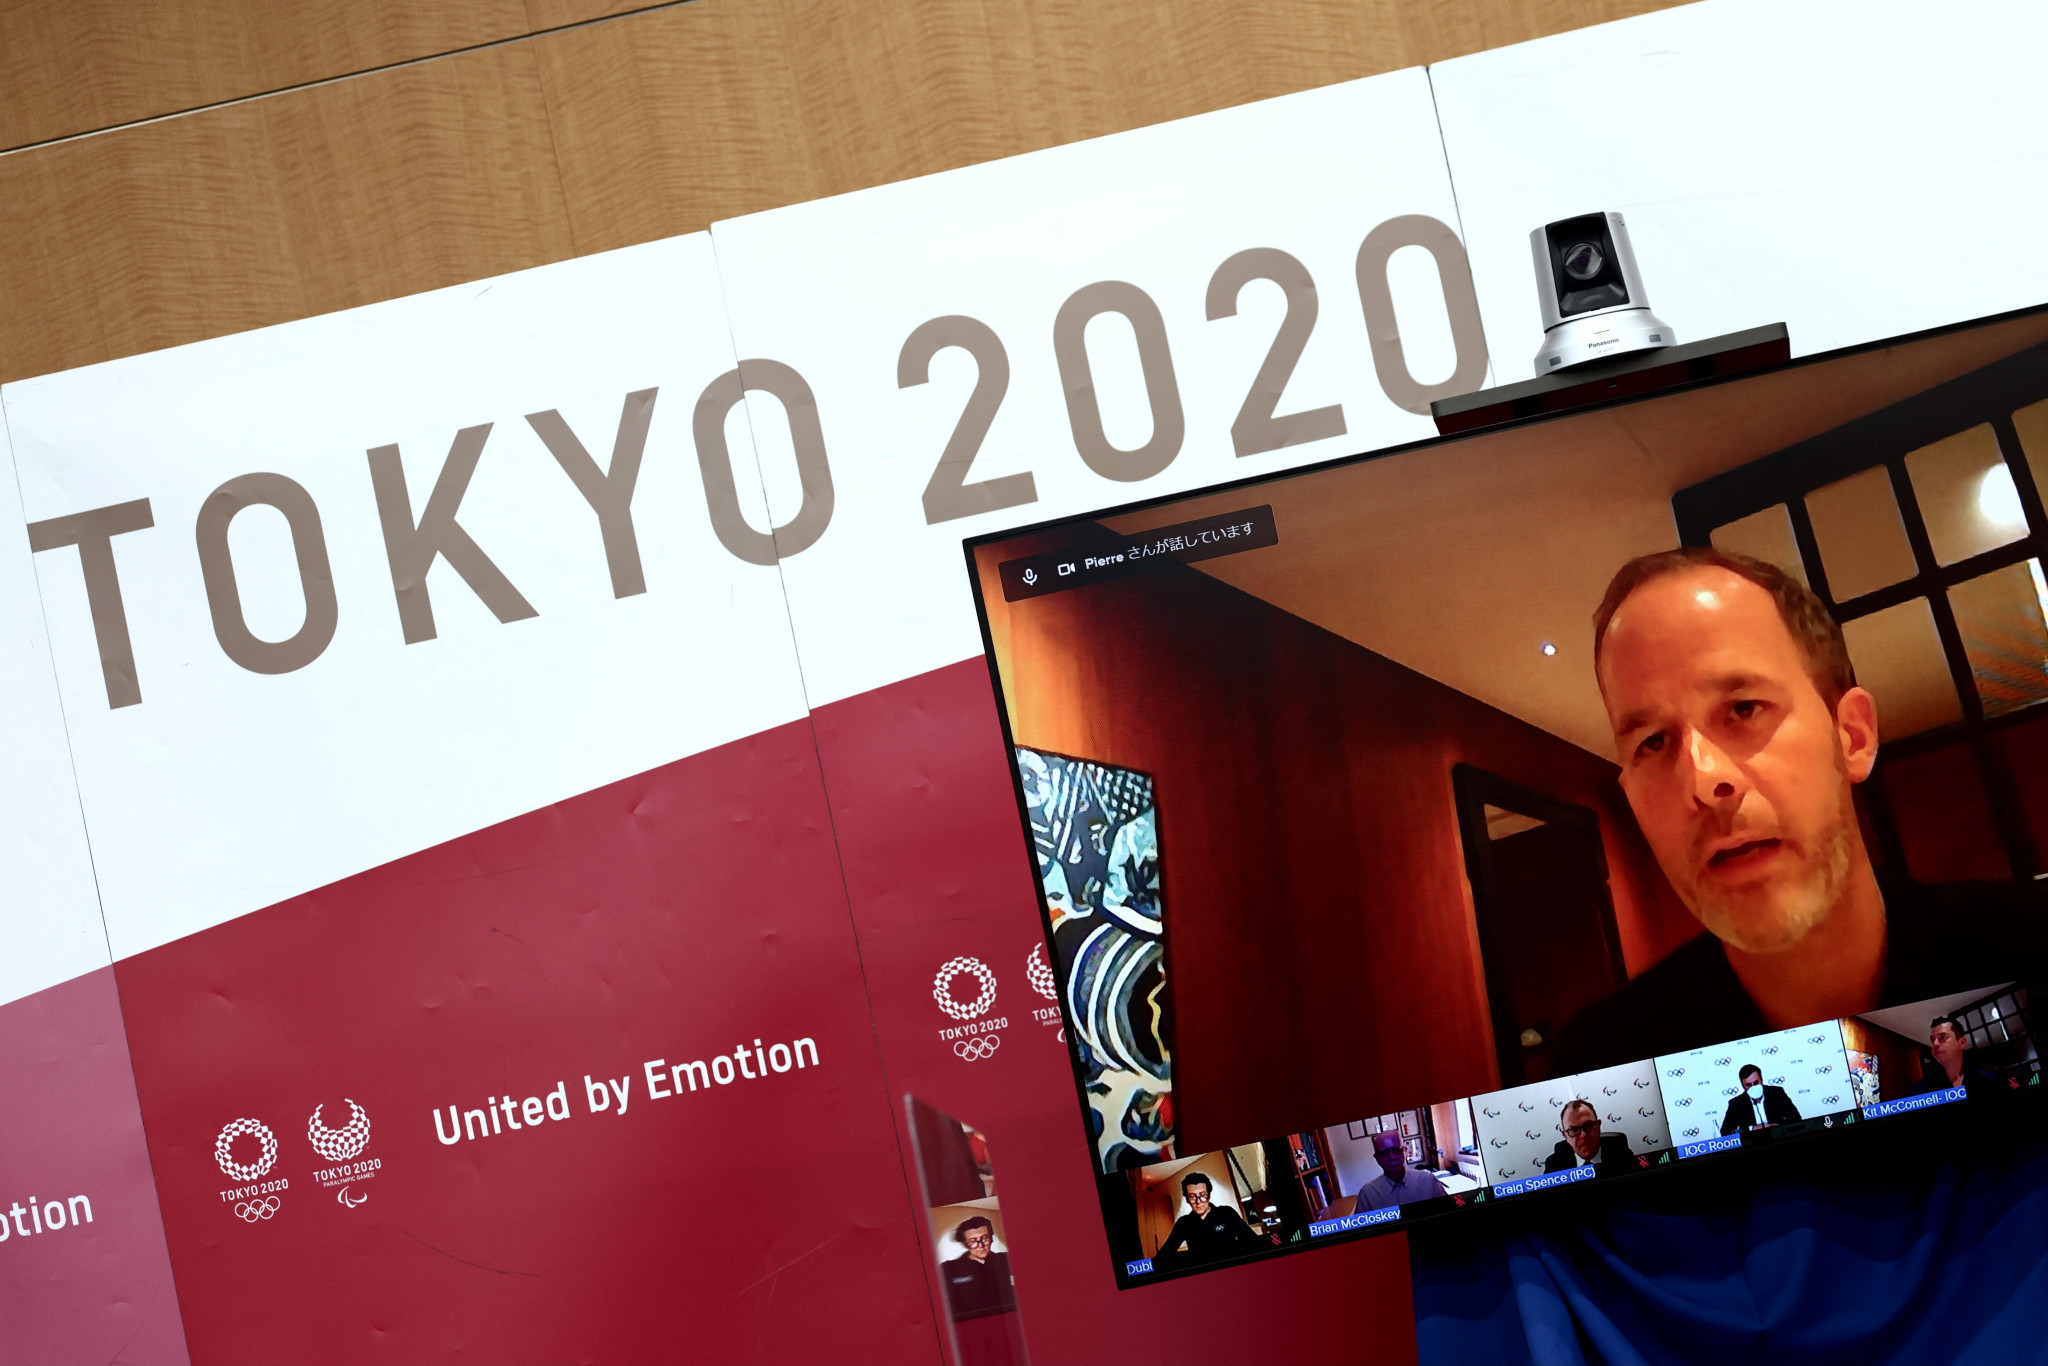 Pierre Ducrey, Olympic Games operations director for the IOC, was speaking at a press conference following the release of the playbook ©Getty Images